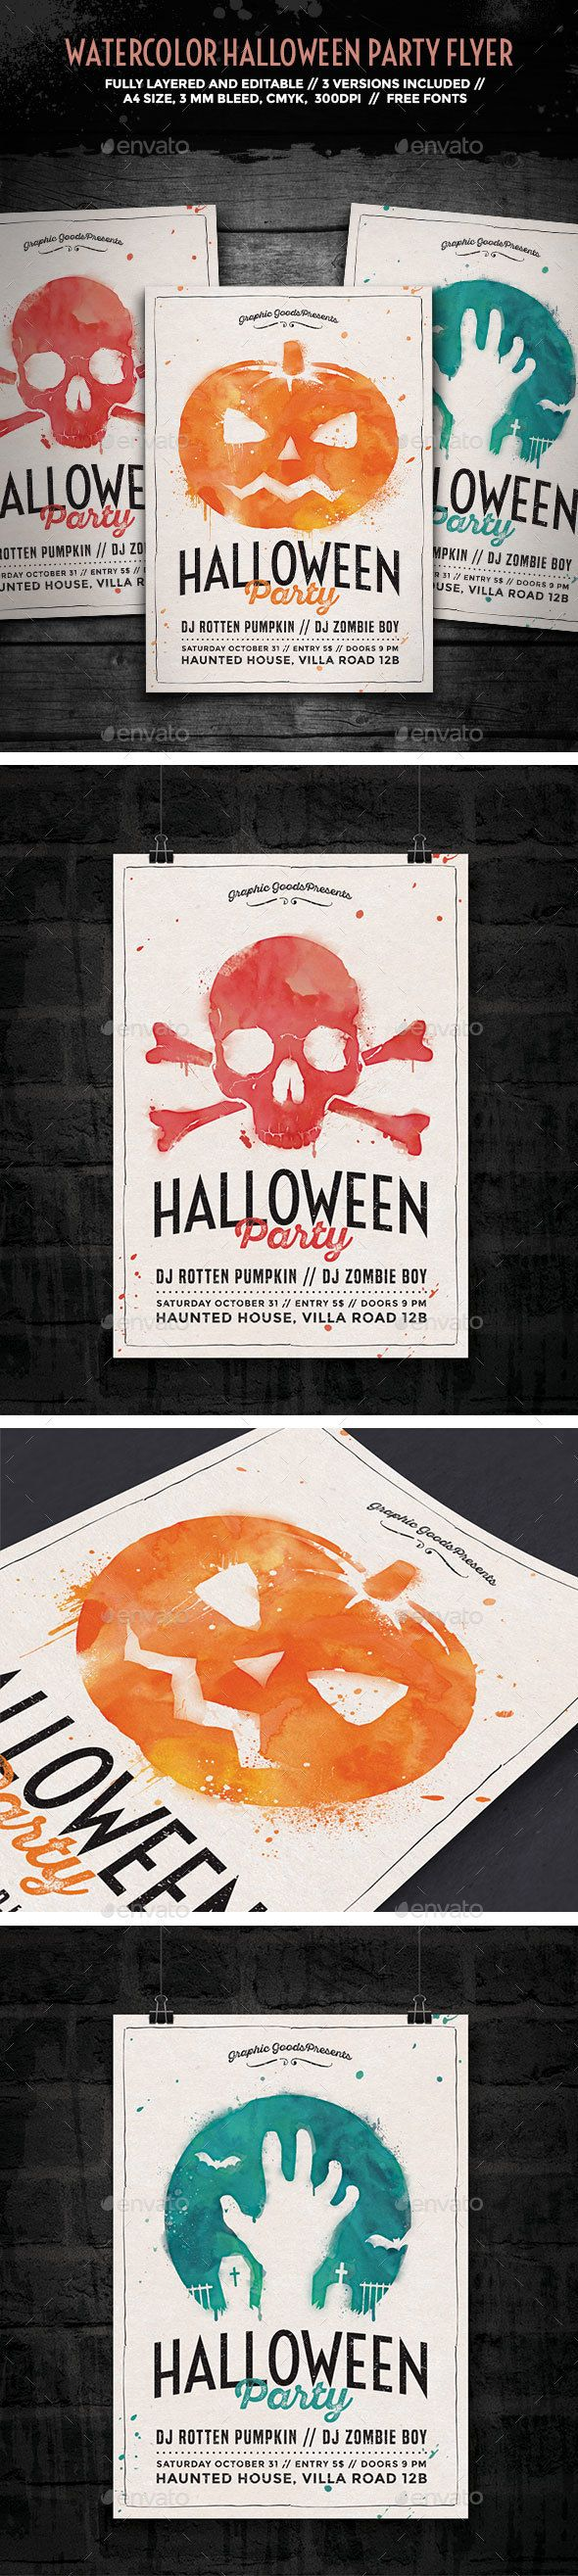 Watercolor Halloween Party Flyer  Halloween Party Flyer Party